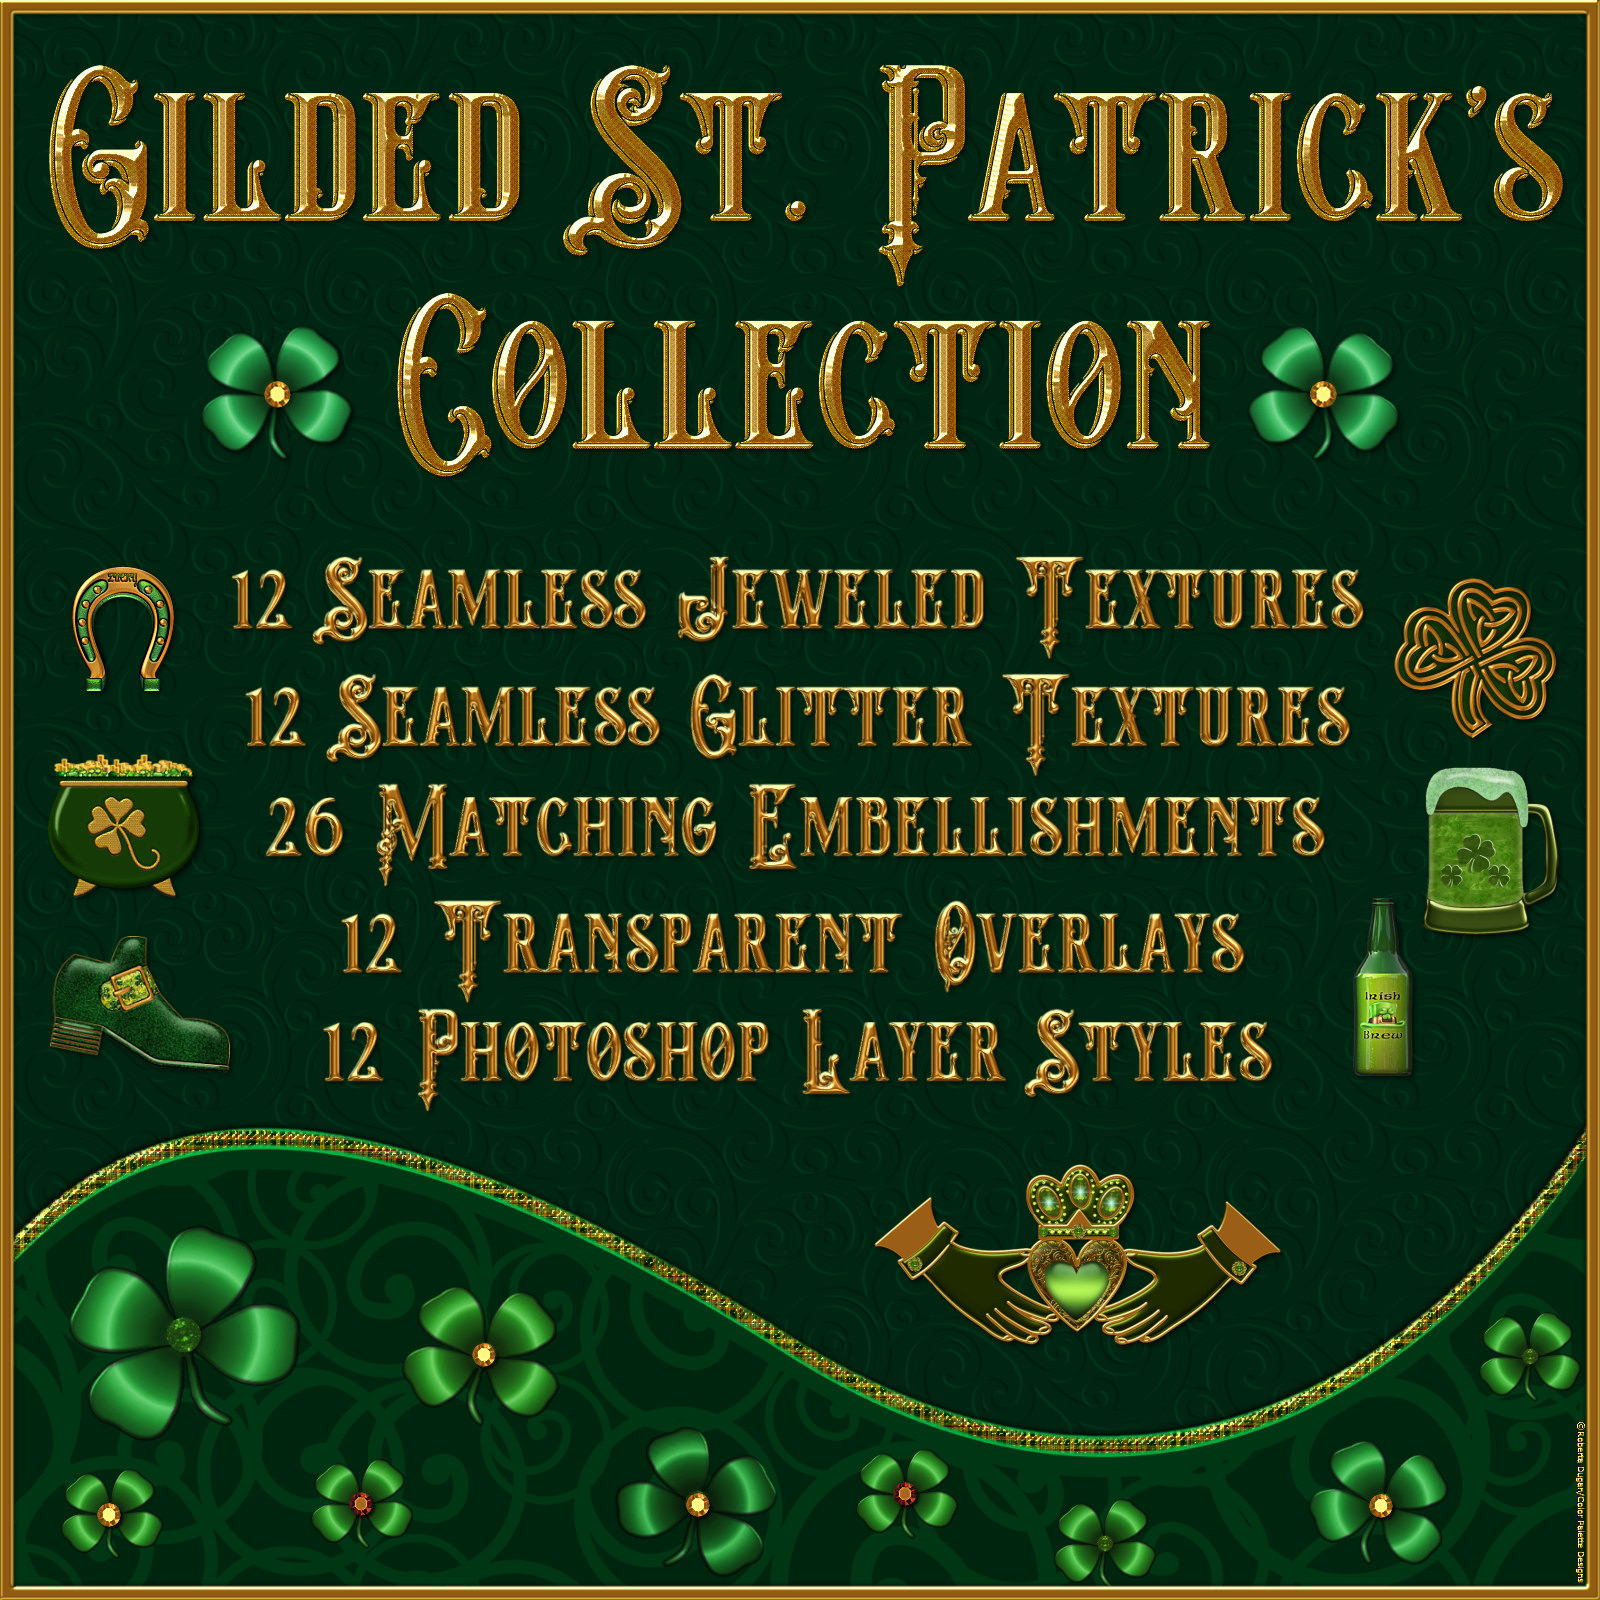 Gilded St. Patrick's Collection